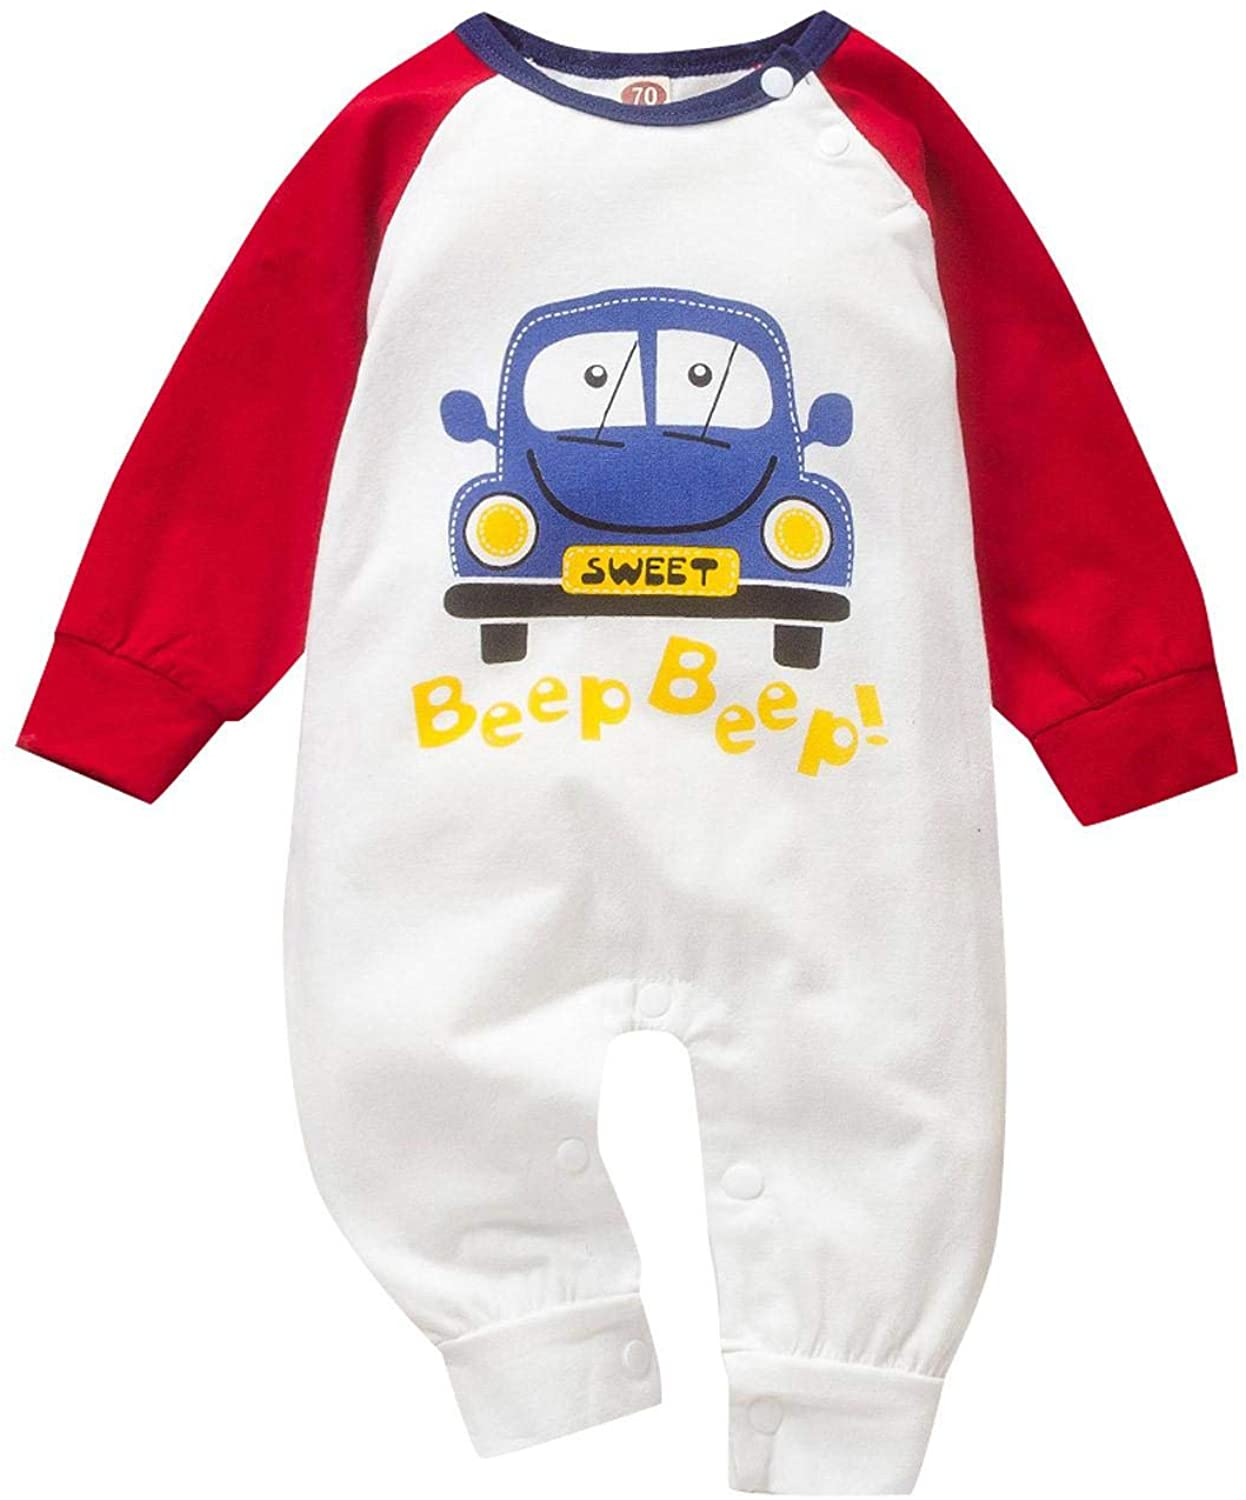 GoodLock(TM) Newborn Infant Baby Boys Girls Cartoon Romper Letter Car Print Jumpsuit Outfits Long Sleeve One Pieces Clothes